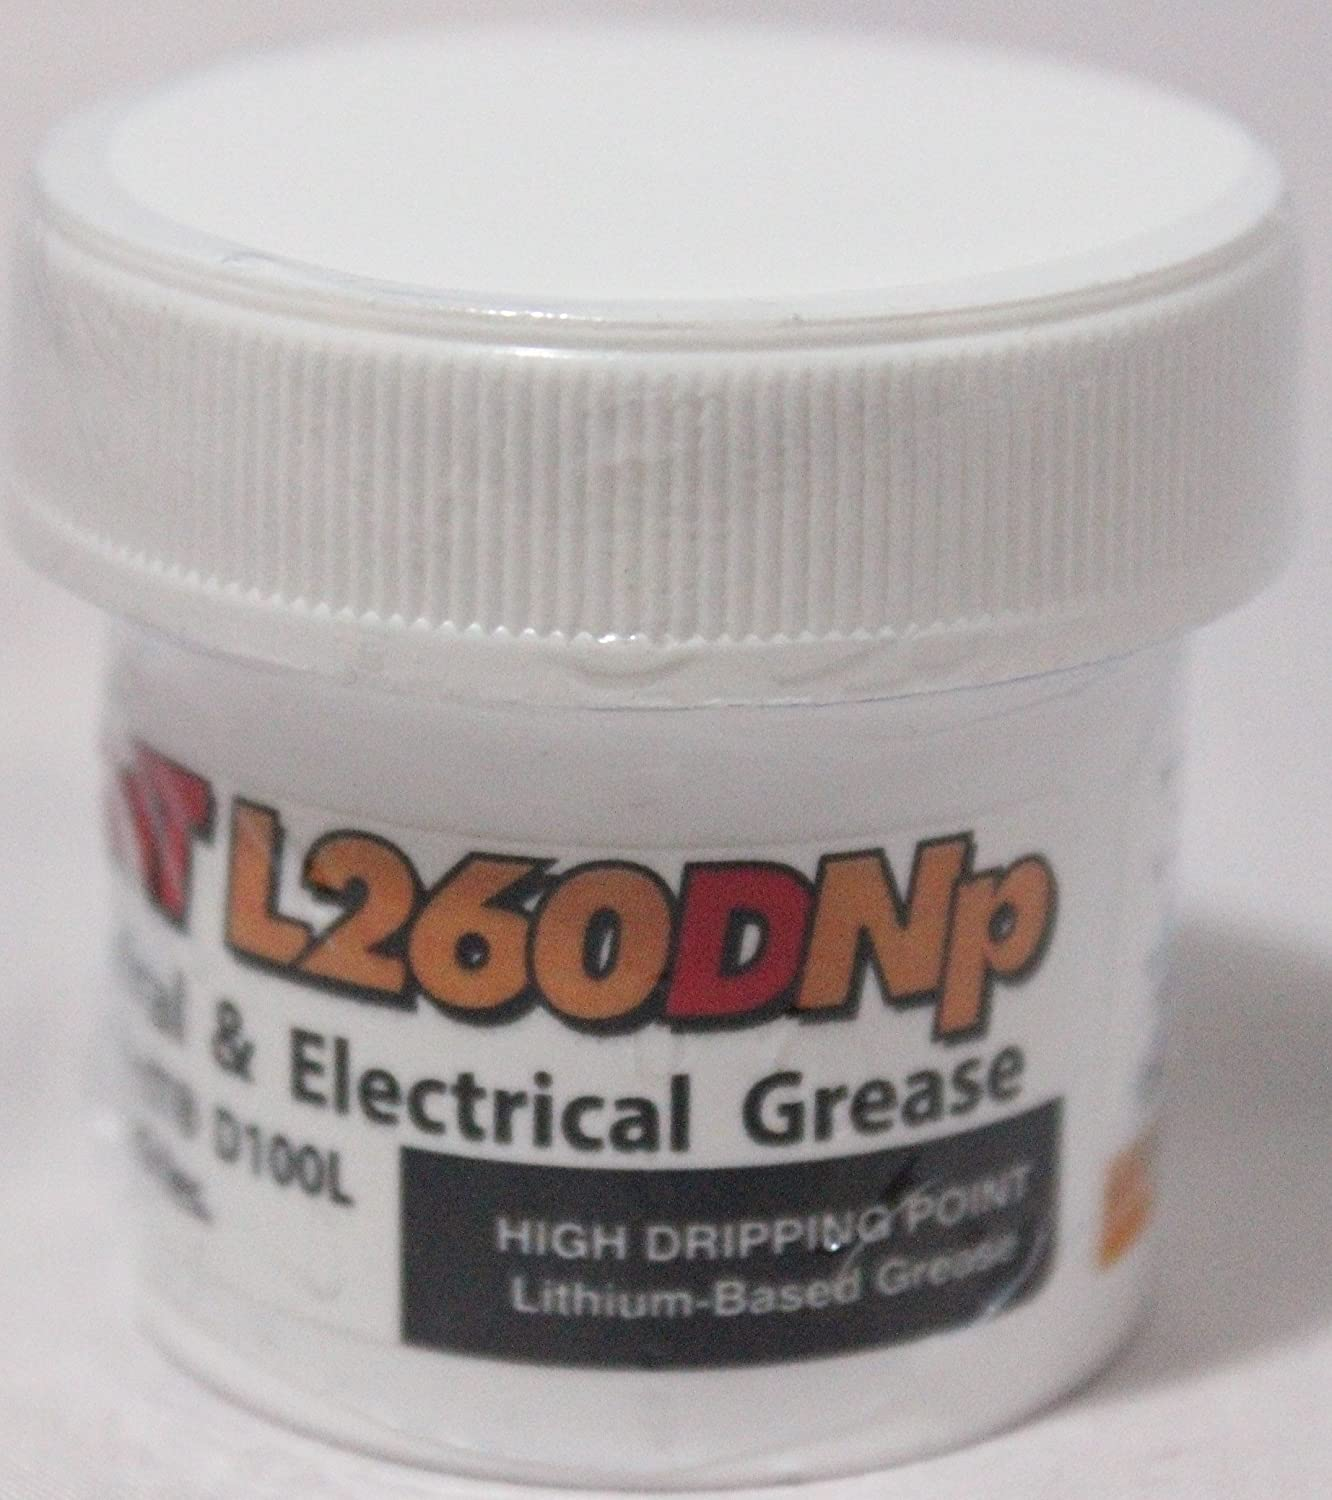 Deoxit L260DNp Plus Mechanical and Electrical Grease - Infused with DeoxIT D100L to help break up oxidation - 28 gram jar